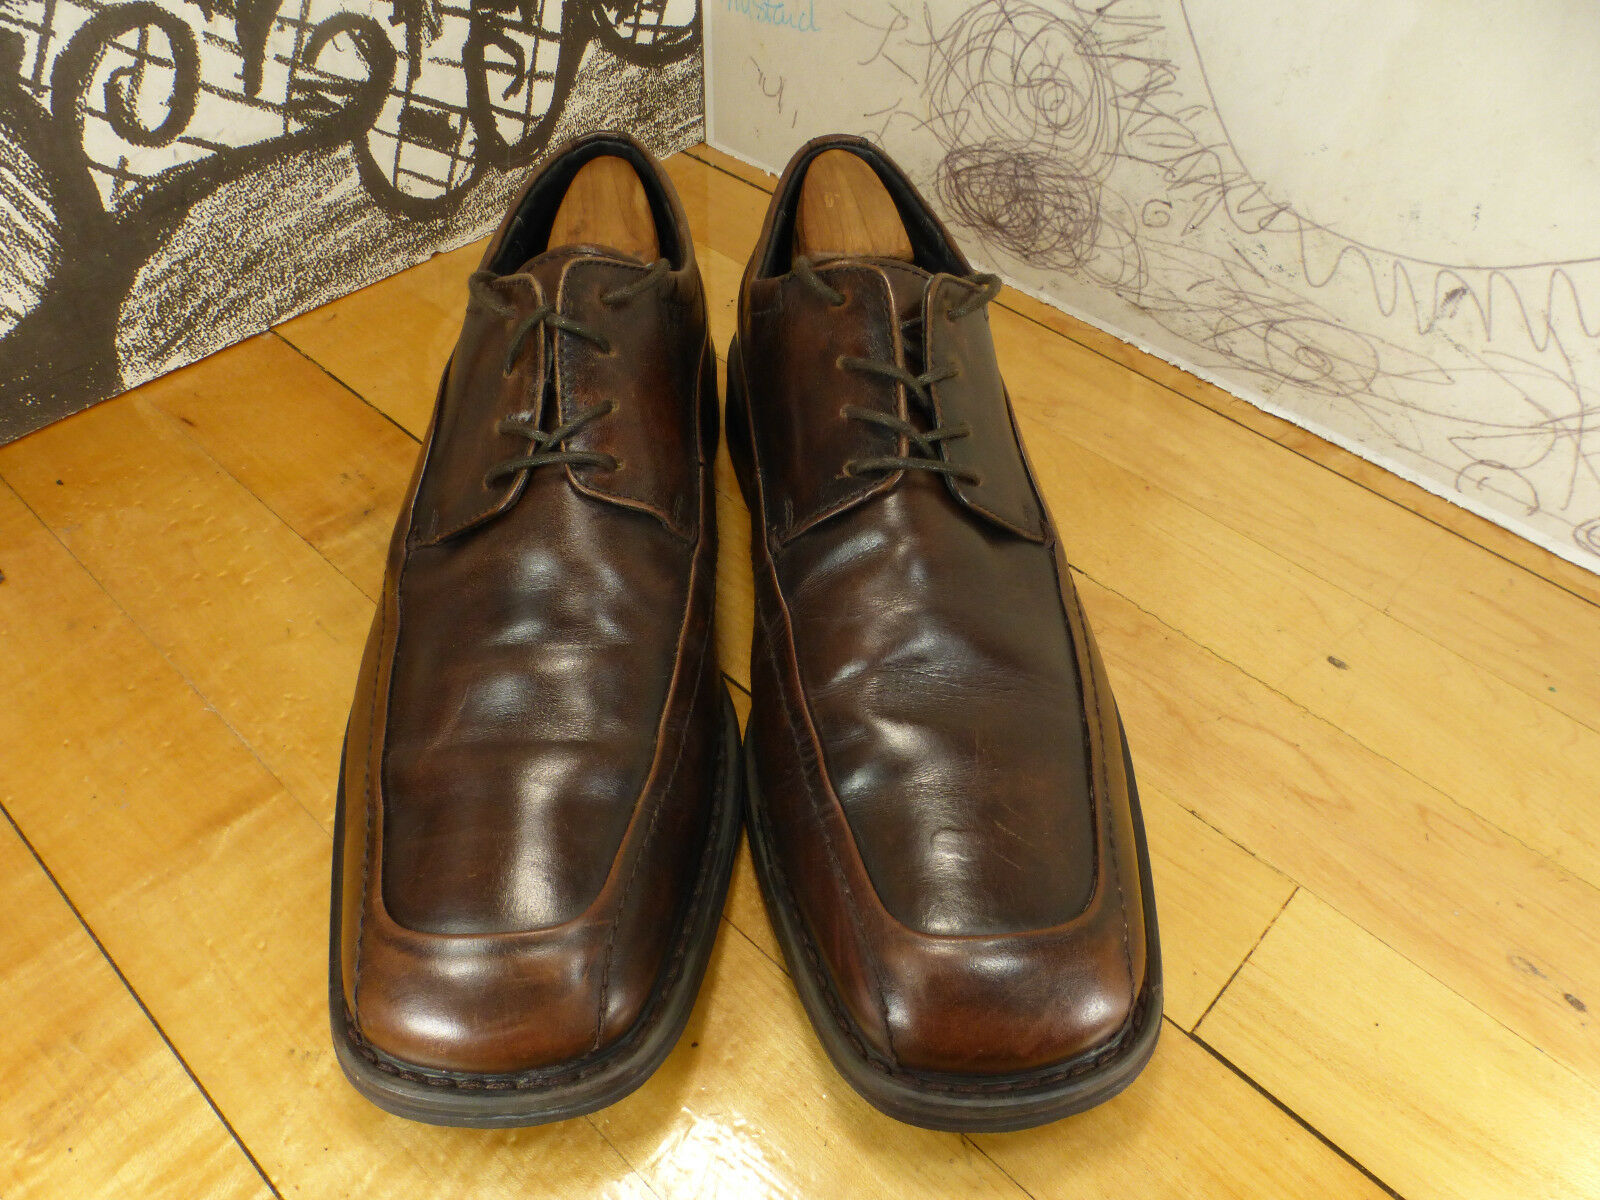 Florsheim Brown Leather Size Oxfords, Size Leather 10M, 18303-2 024e49